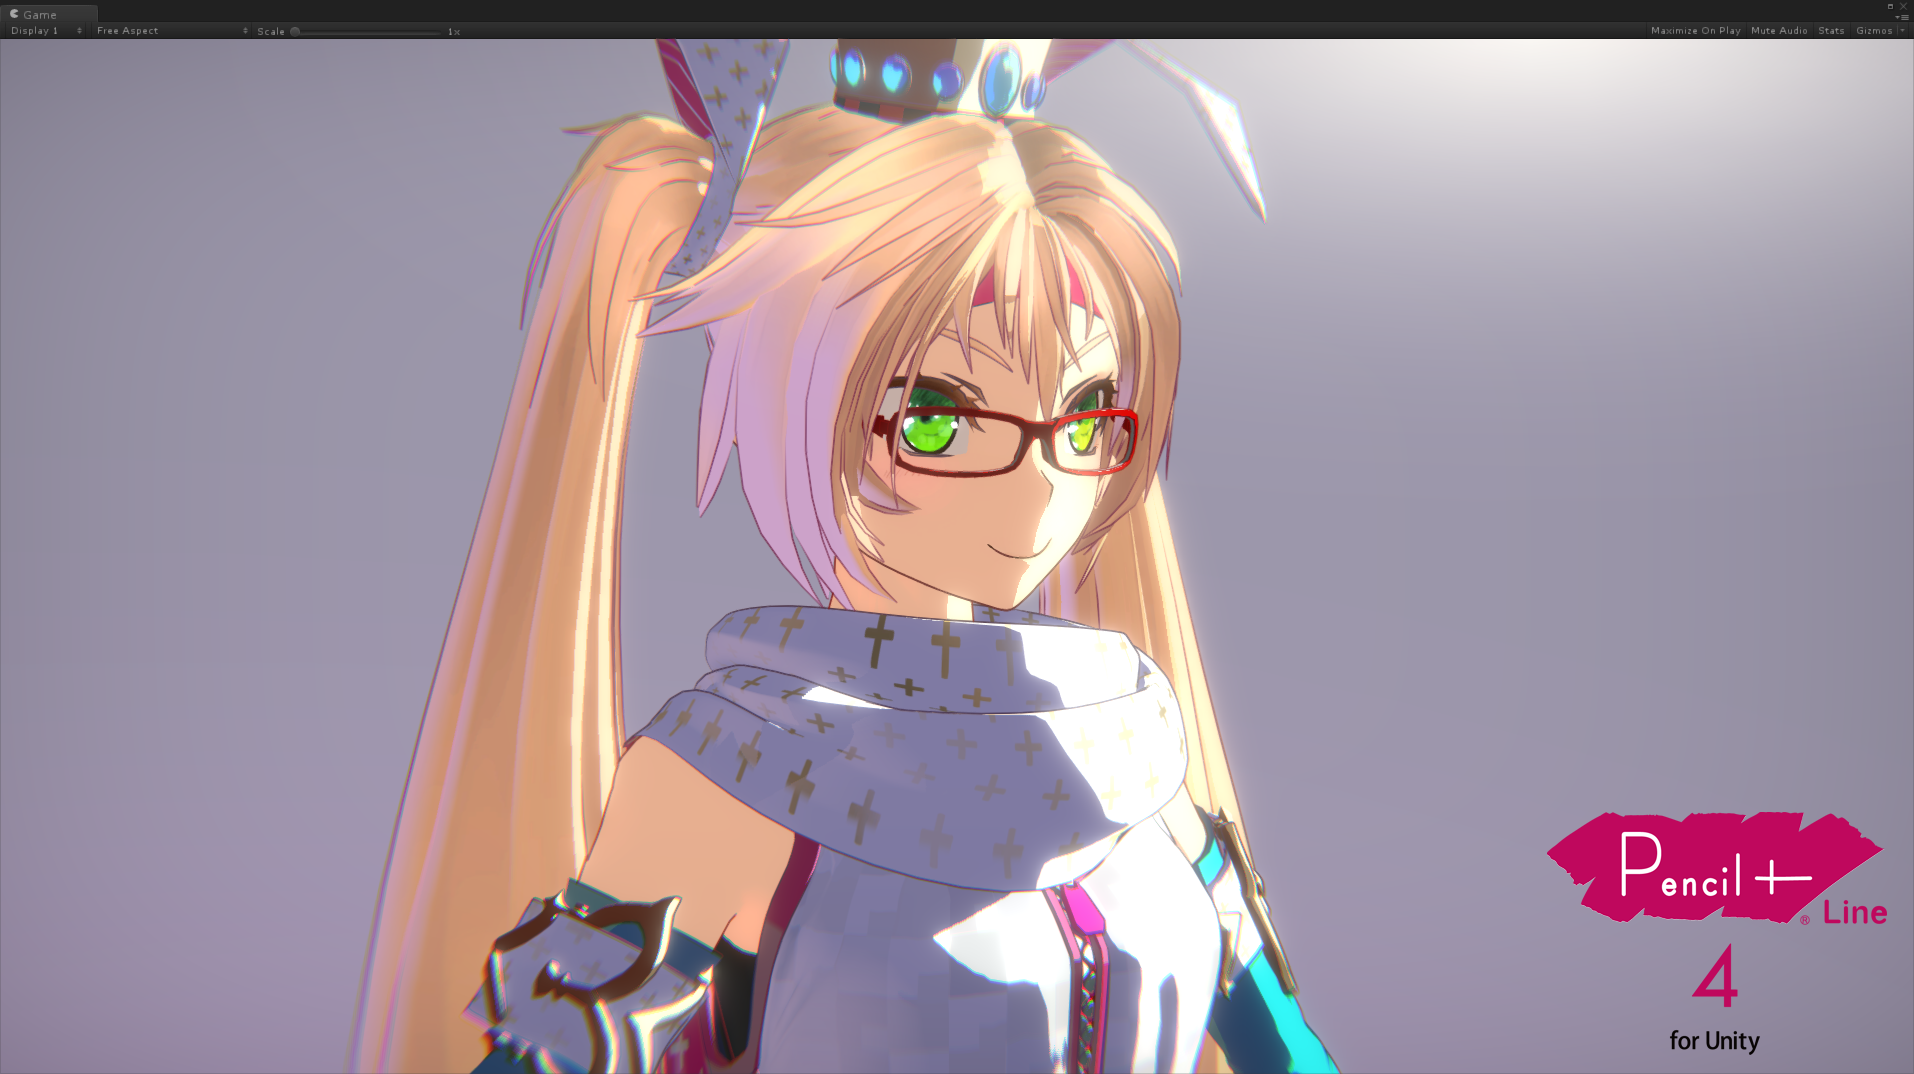 Unity-Chan Toon Shader Ver.2.0